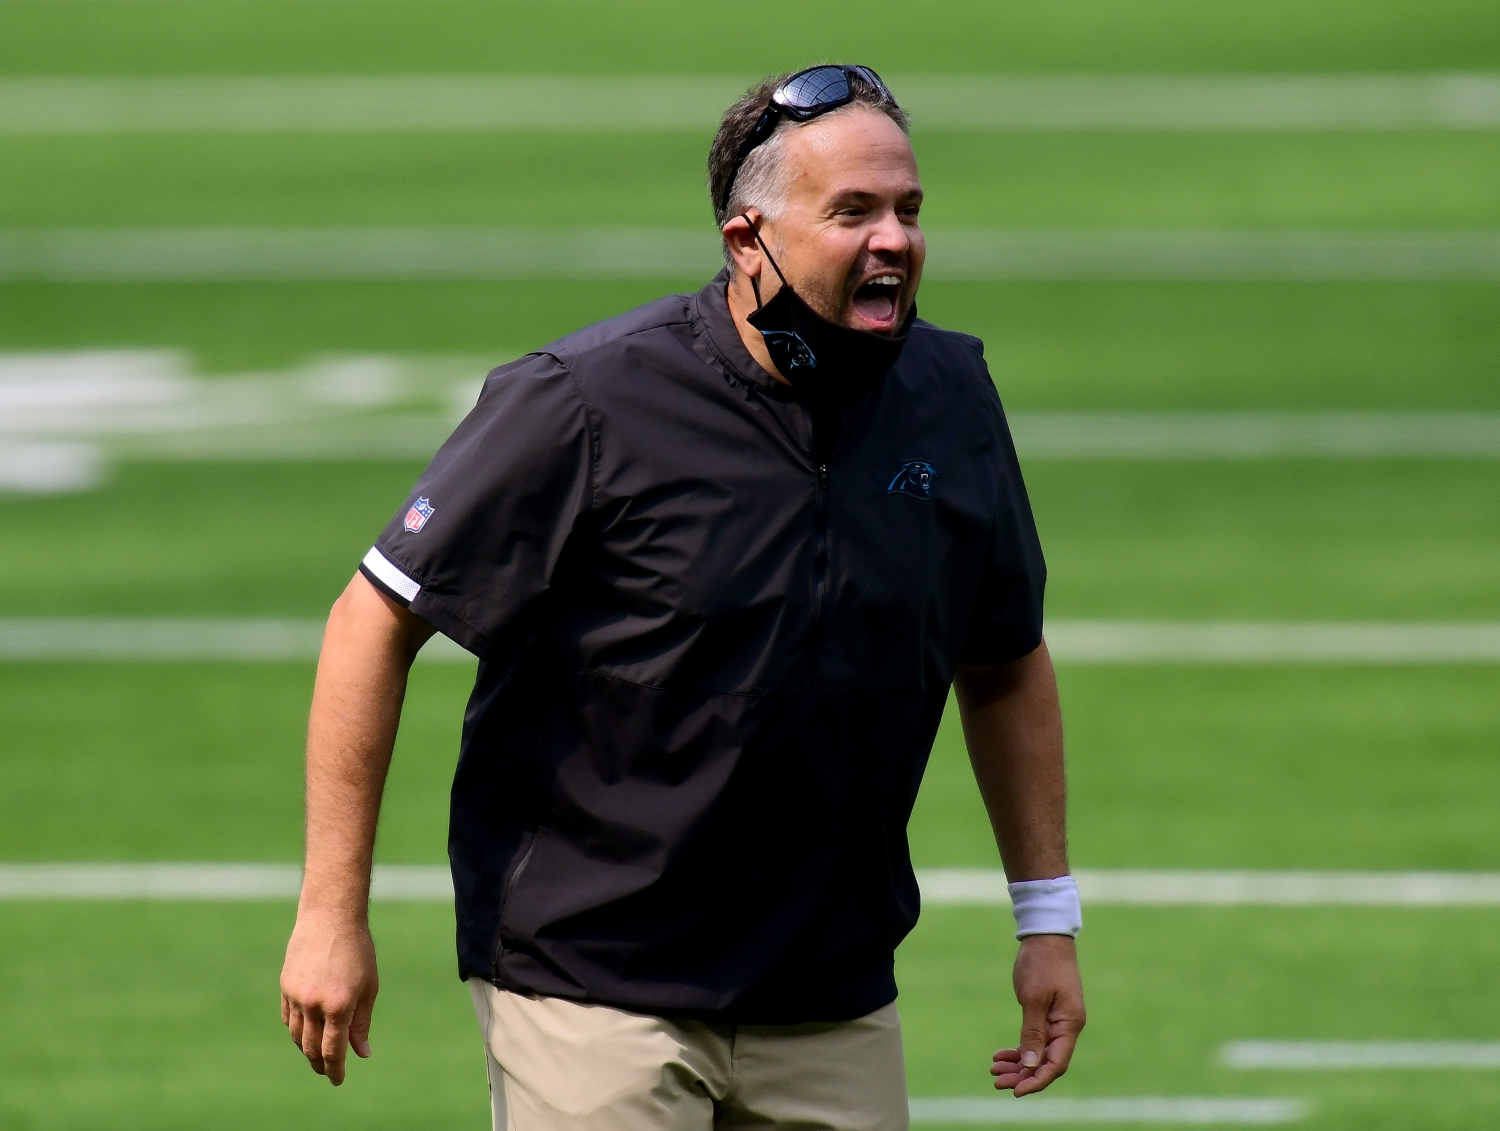 Head coach Matt Rhule of the Carolina Panthers yells to his team during warm up before the game against the LA Chargers.